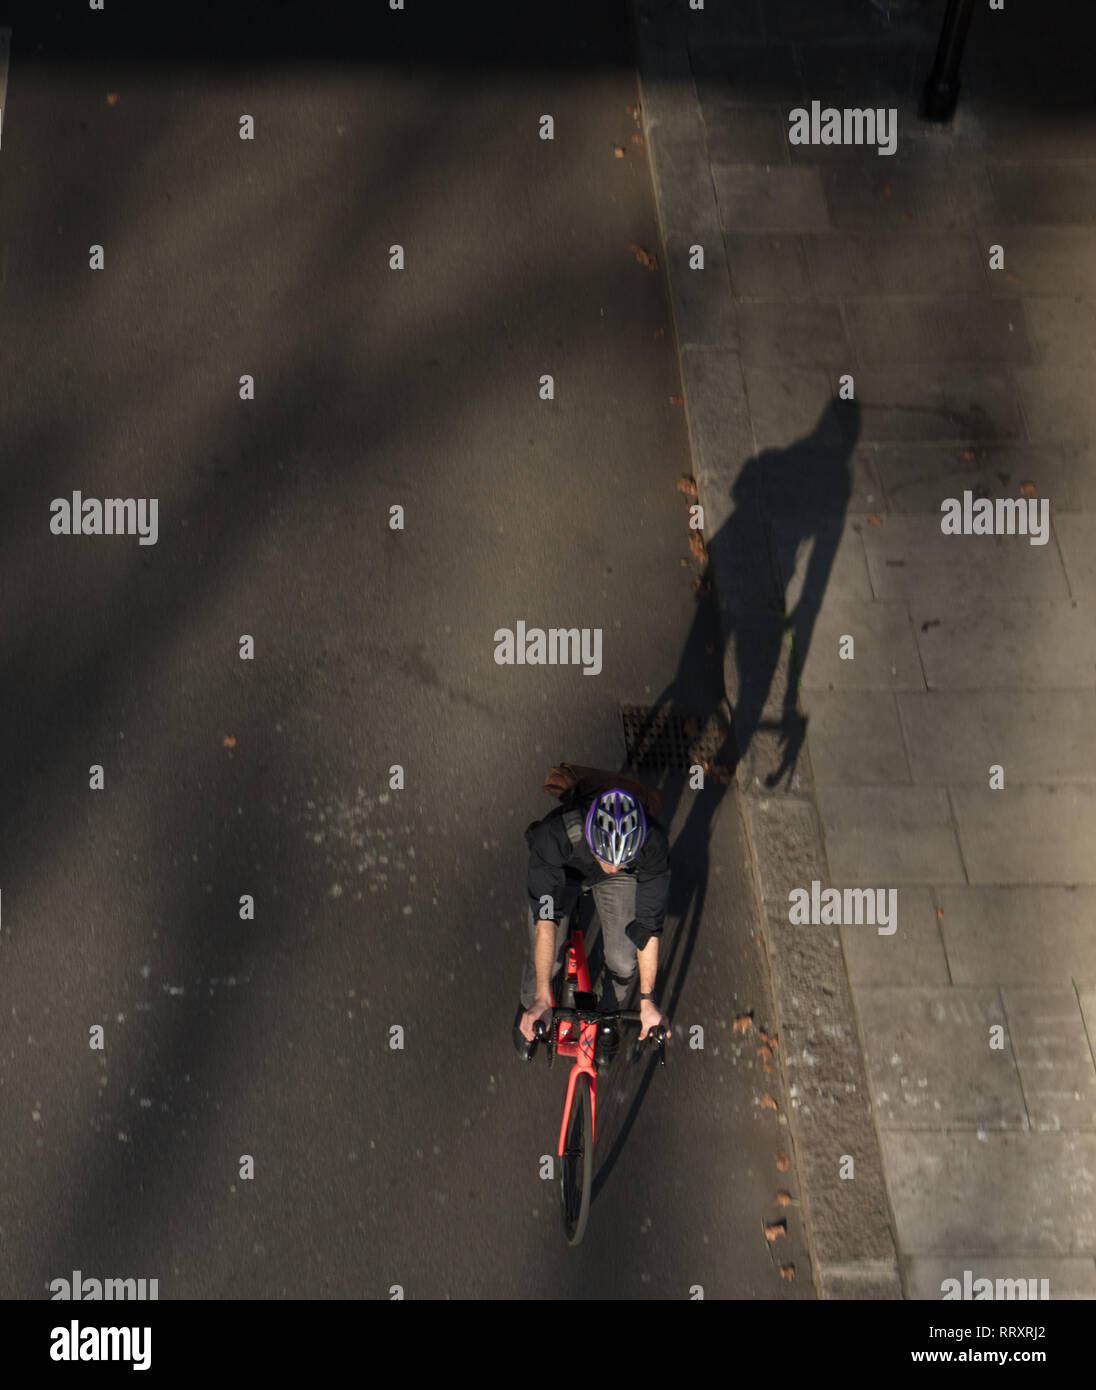 Cyclist passing under the Golden Jubilee Bridge, England, London, UK creating a long shadow on this unusual warm and spring like day in February. - Stock Image